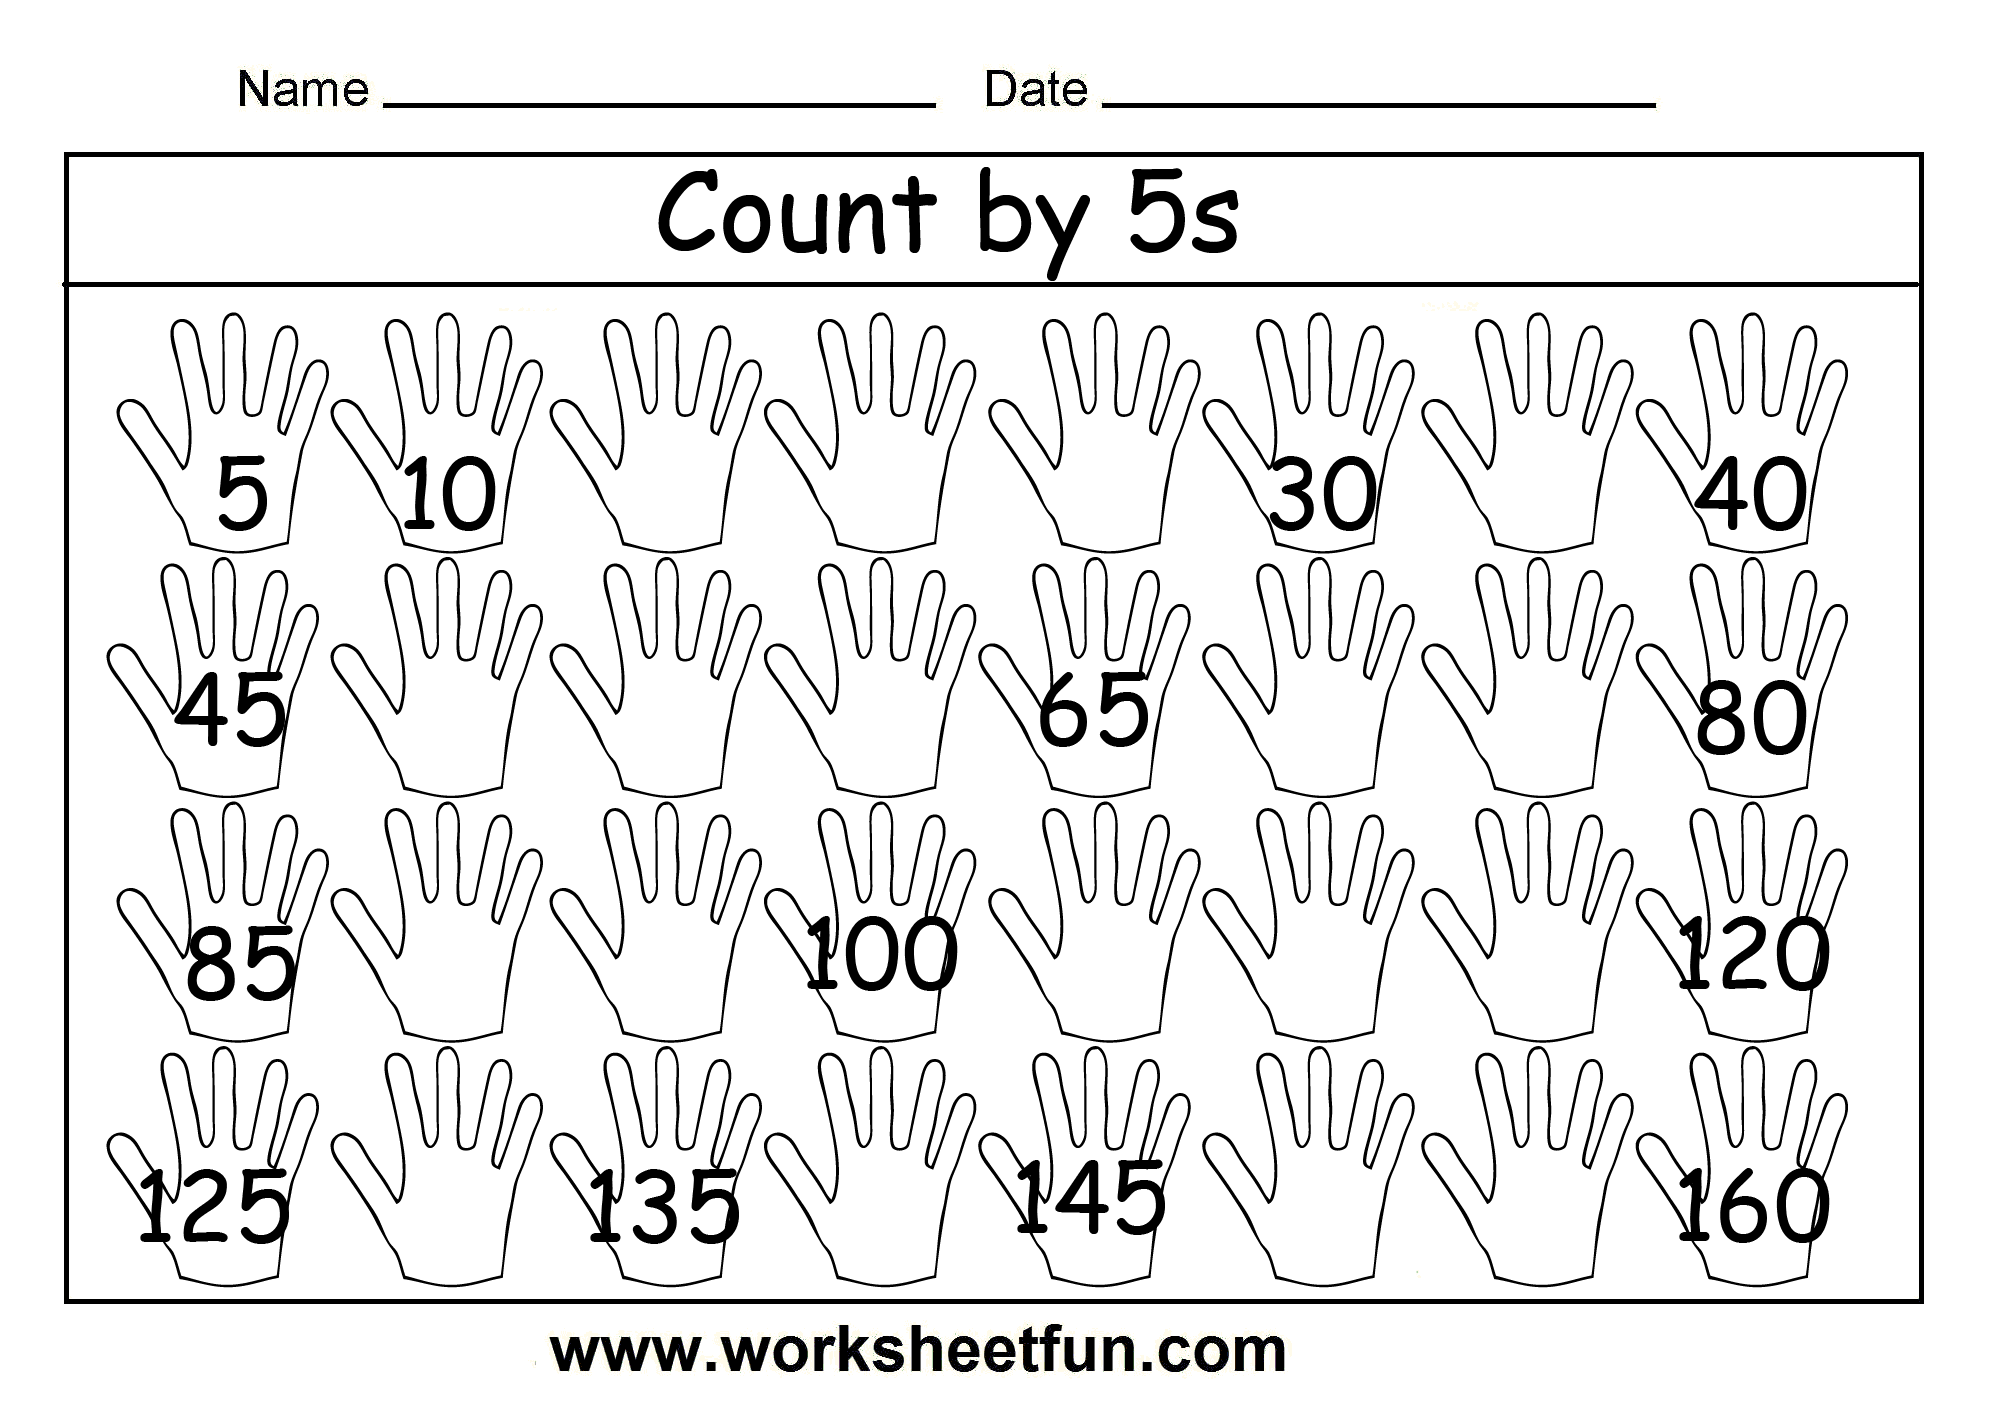 Count By 5s 2 Worksheets Free Printable Worksheets Worksheetfun